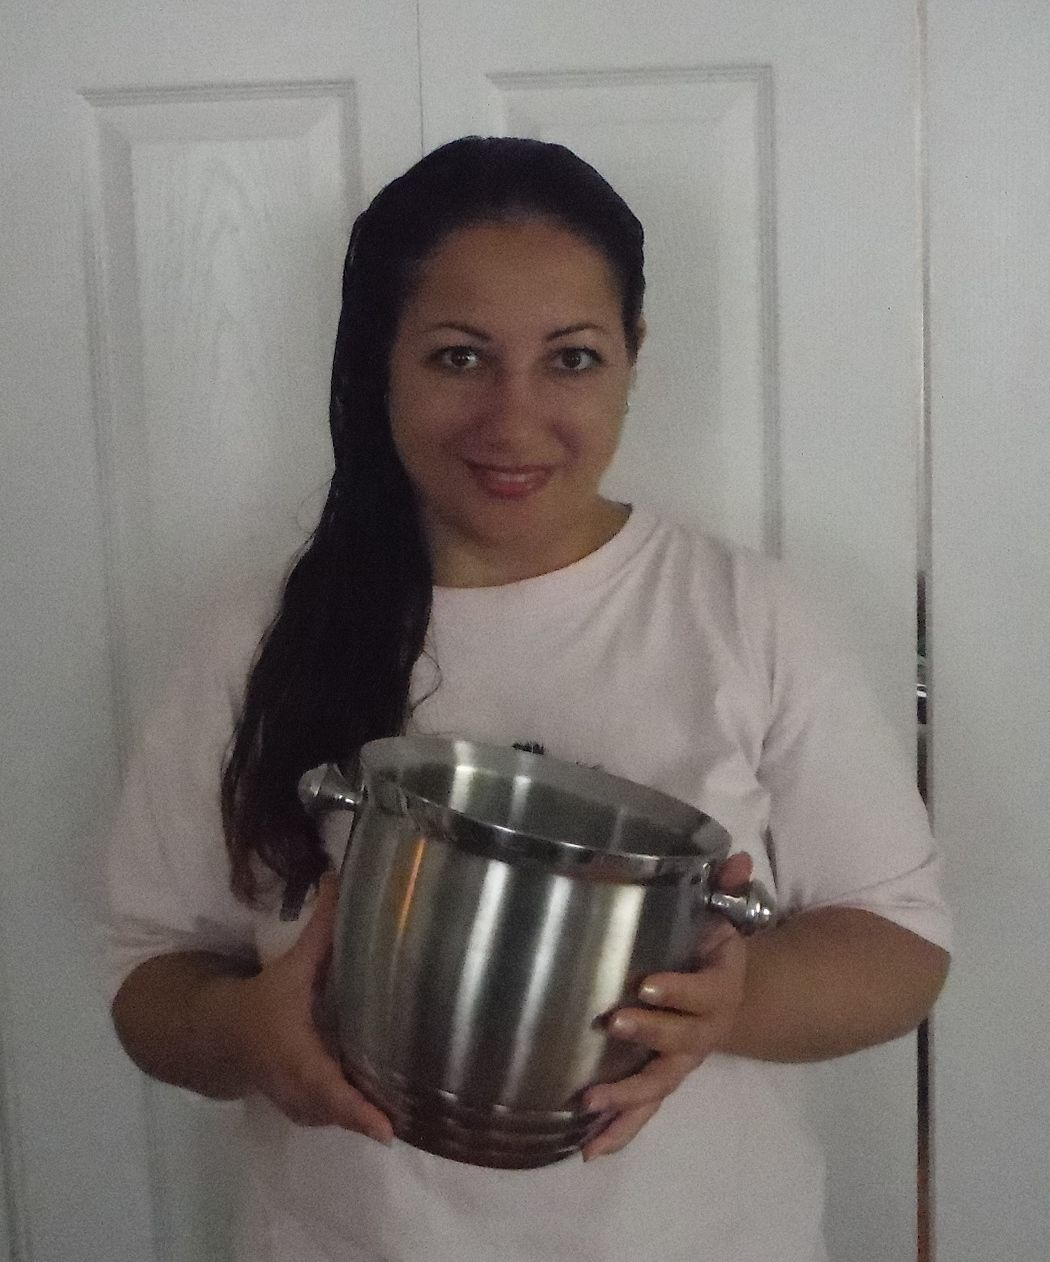 I completed the Ice Bucket Challenge for ALS, and promised to hold a fundraiser at my online store, Younique, which will allow your shopping experience go to a good cause. Shop this week from this Even (8/25/14 thru 8/31/14) and I will donate all residual income to the cause. Click here to help: https://www.youniqueproducts.com/Lola/products#.U_vAYPnNEuc